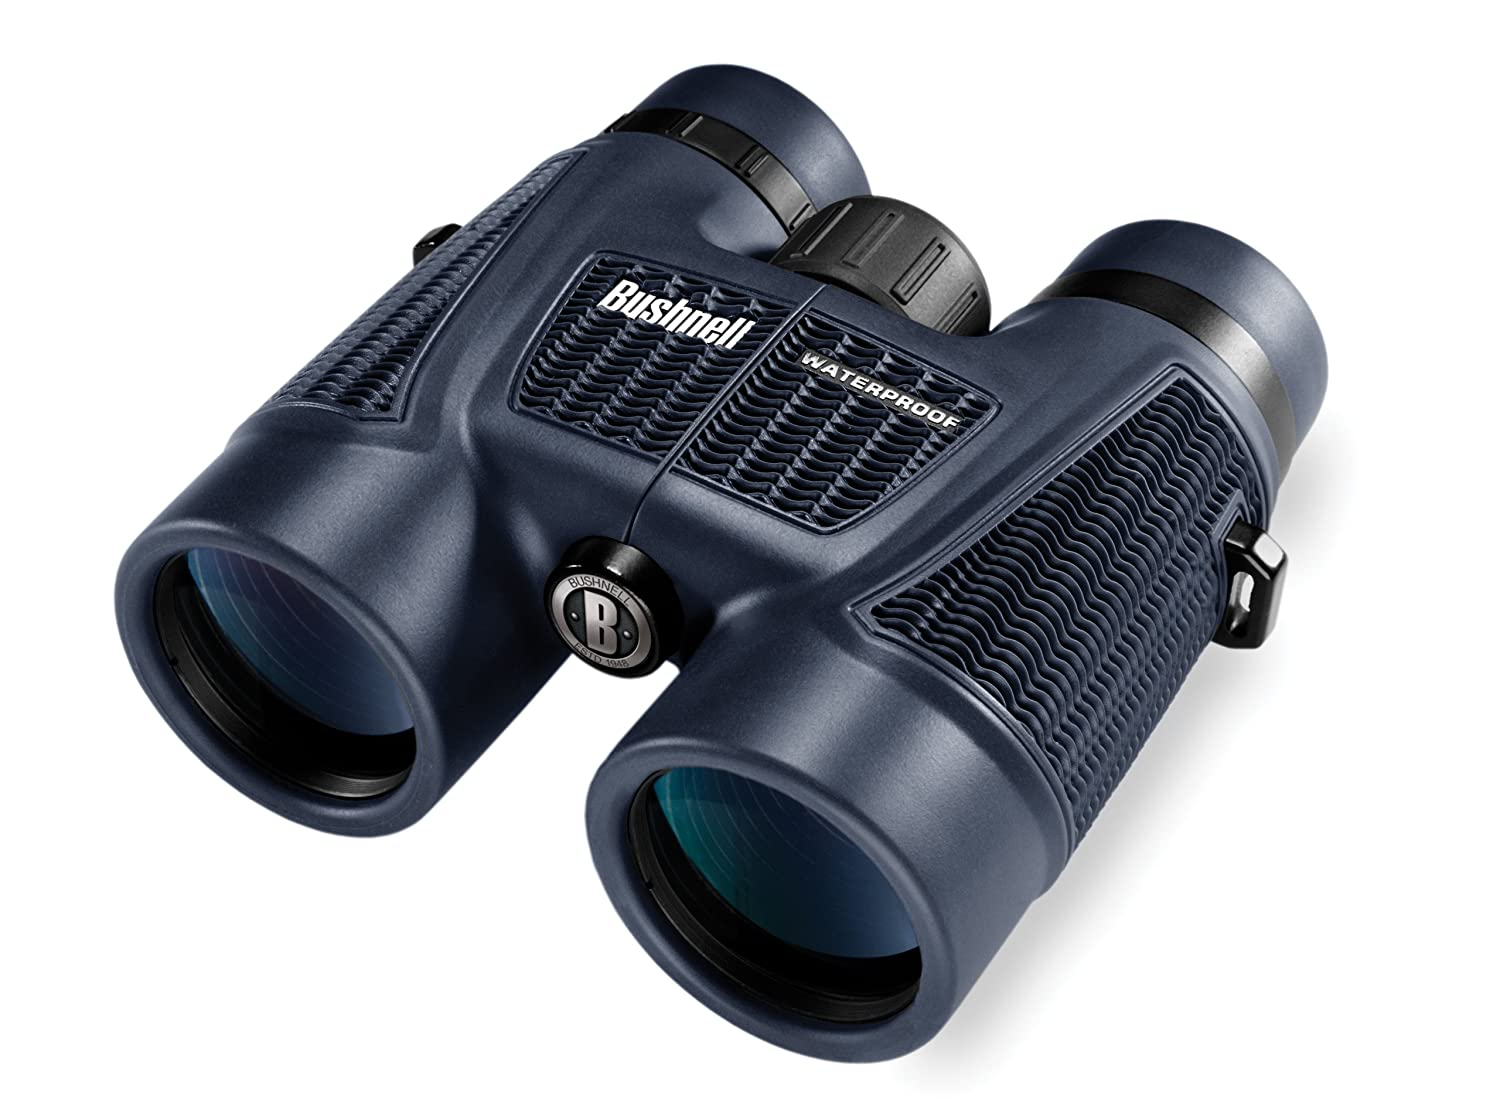 Bushnell H2O Waterproof/Fogproof Roof Prism Binocular, 8 x 42-mm, Black ,$64.36 after $25 MIR